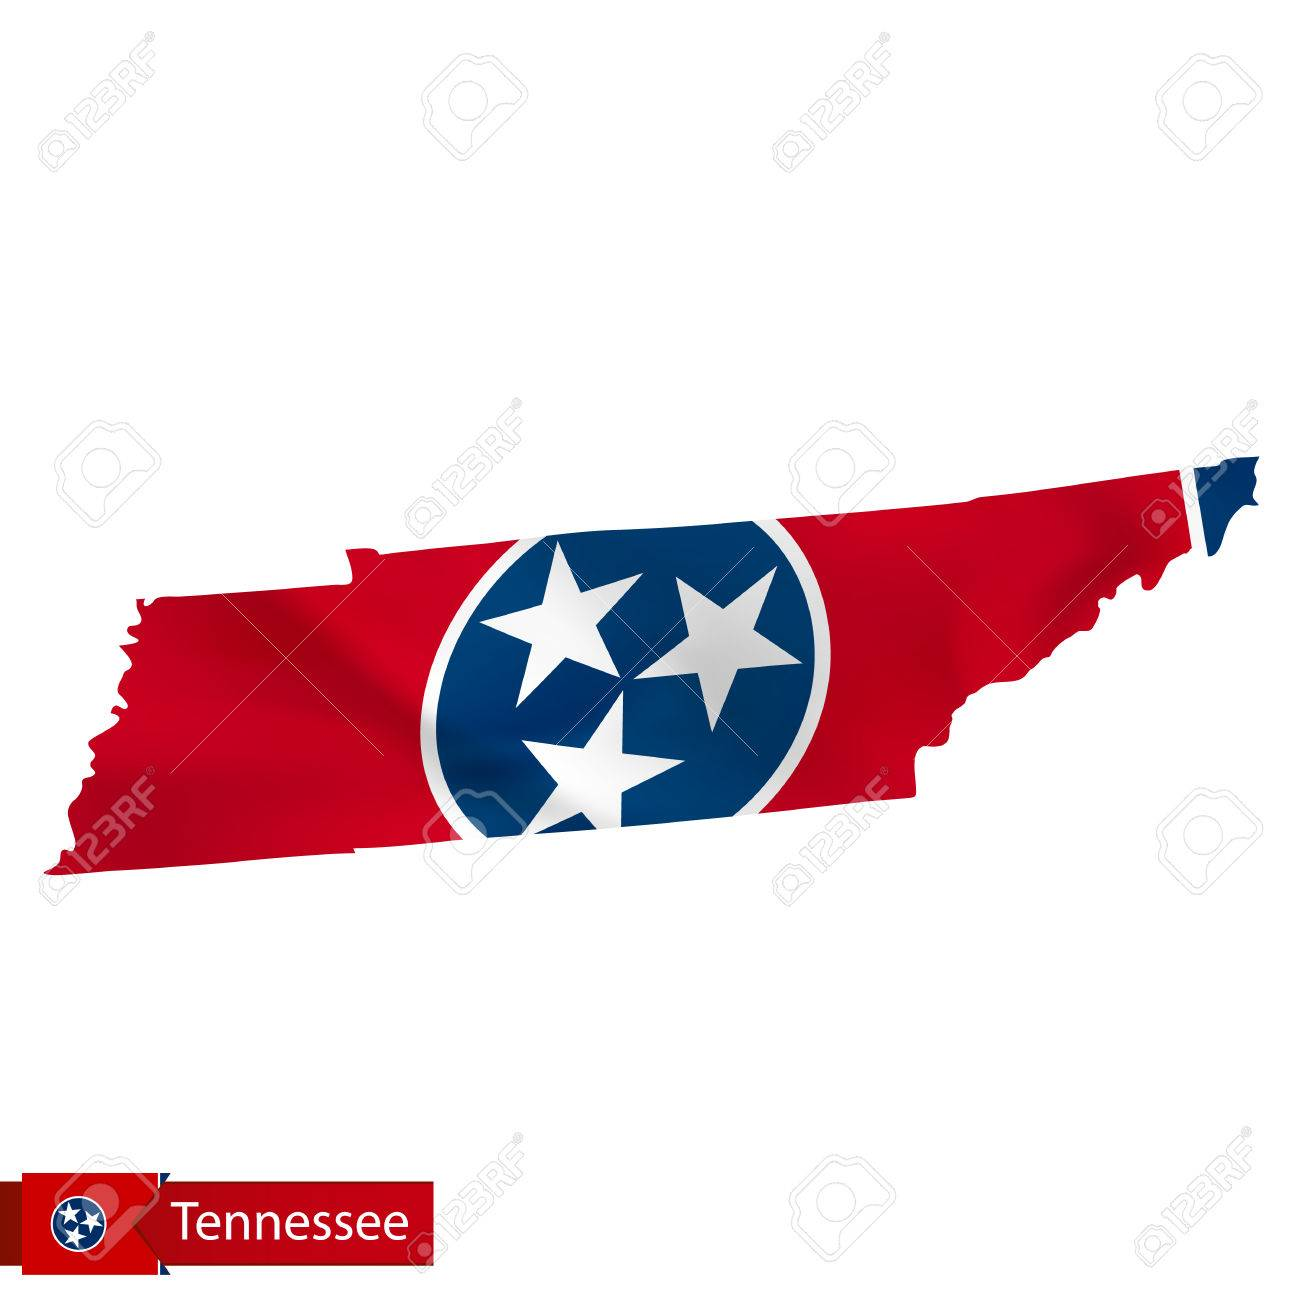 Tennessee State Map With Waving Flag Of Us State Vector